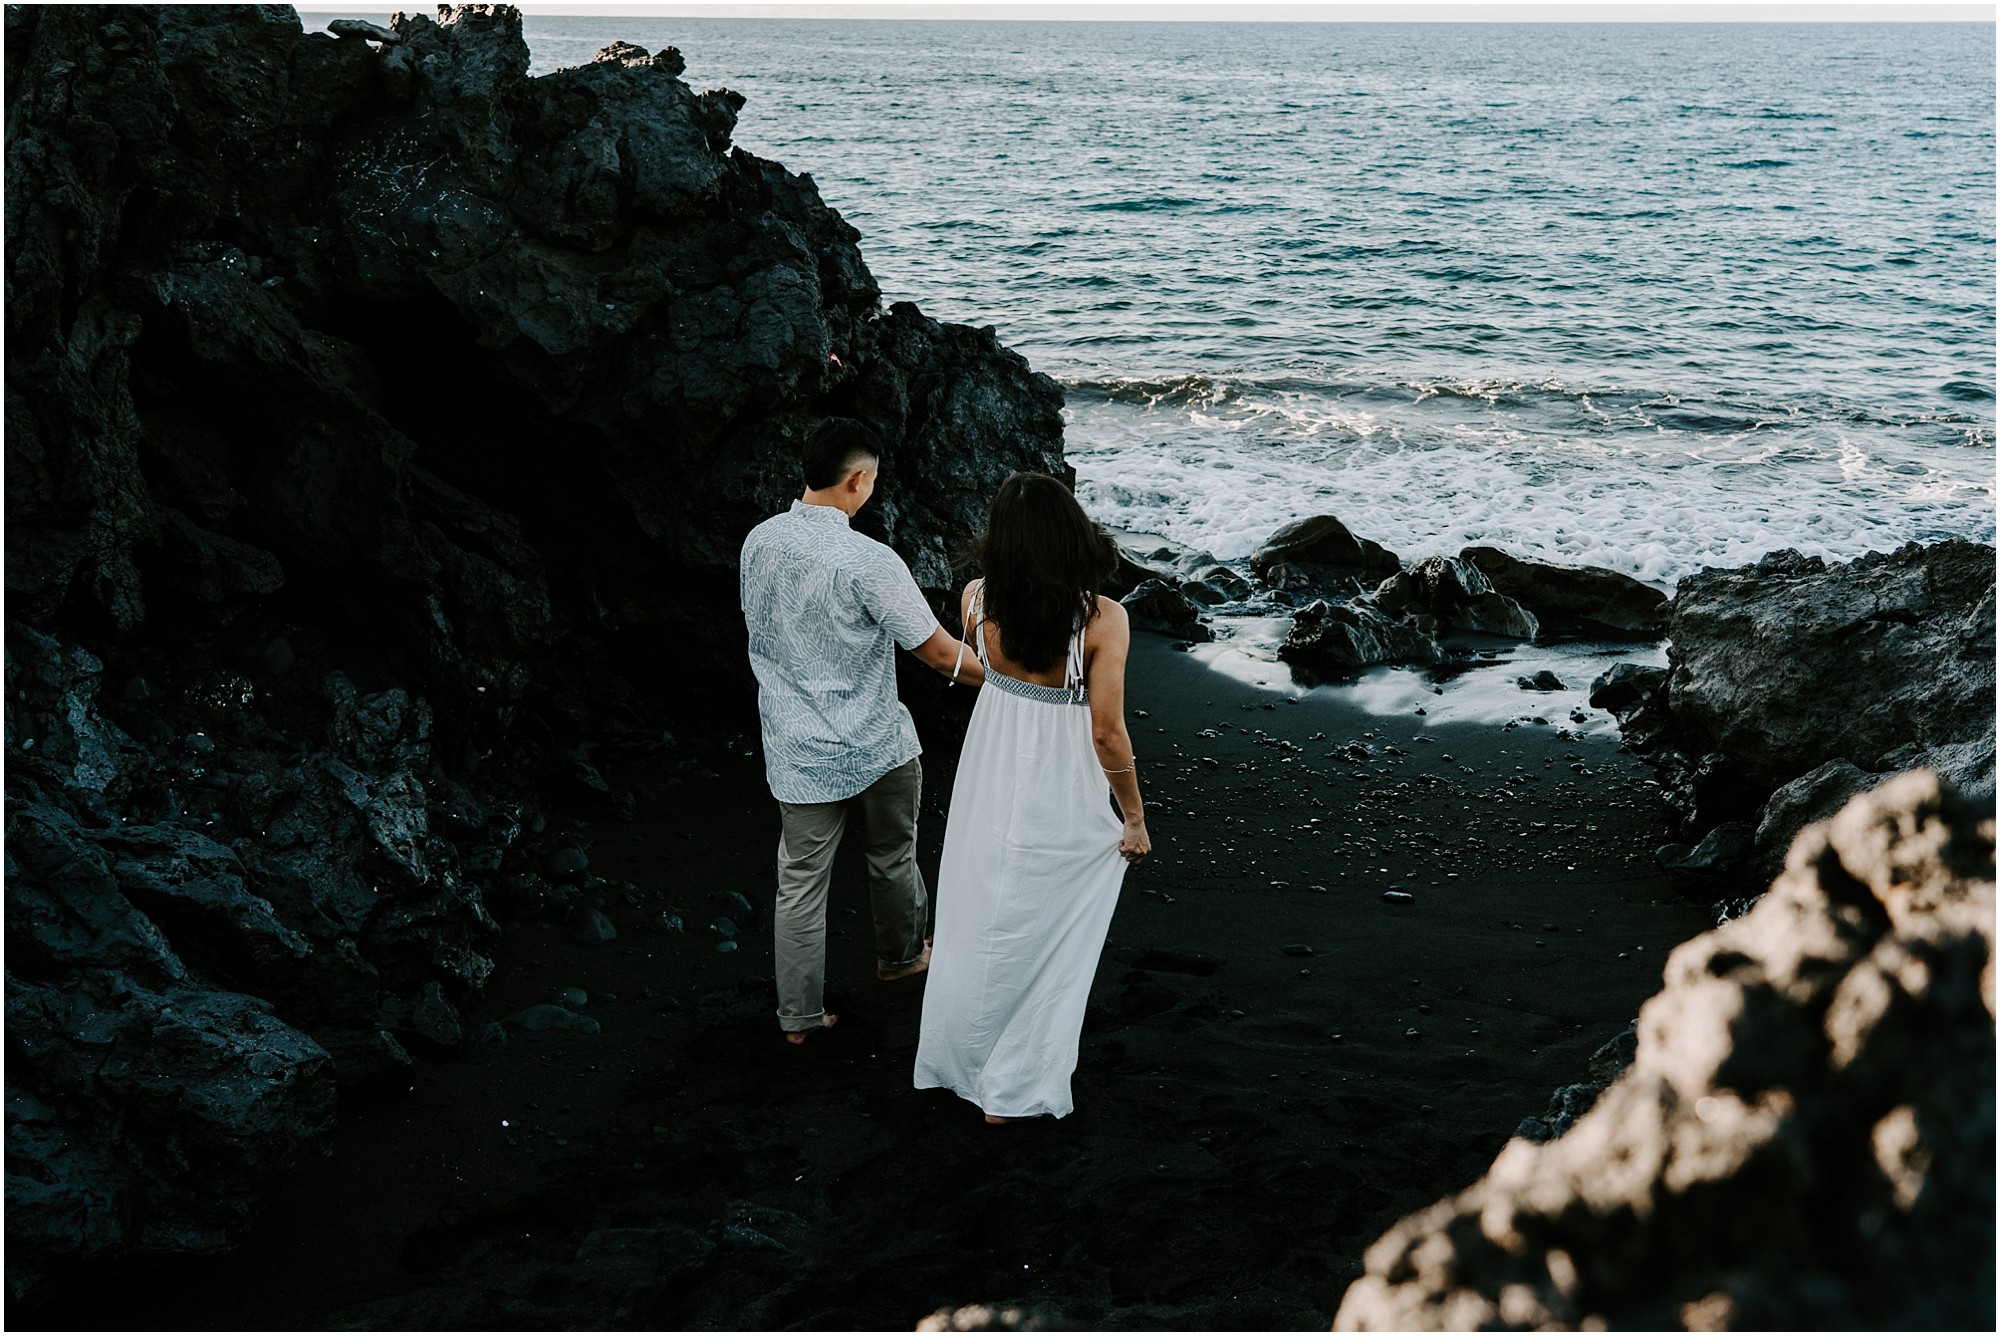 big-island-maternity-photos-hawaii-elopement-photographer_0002.jpg